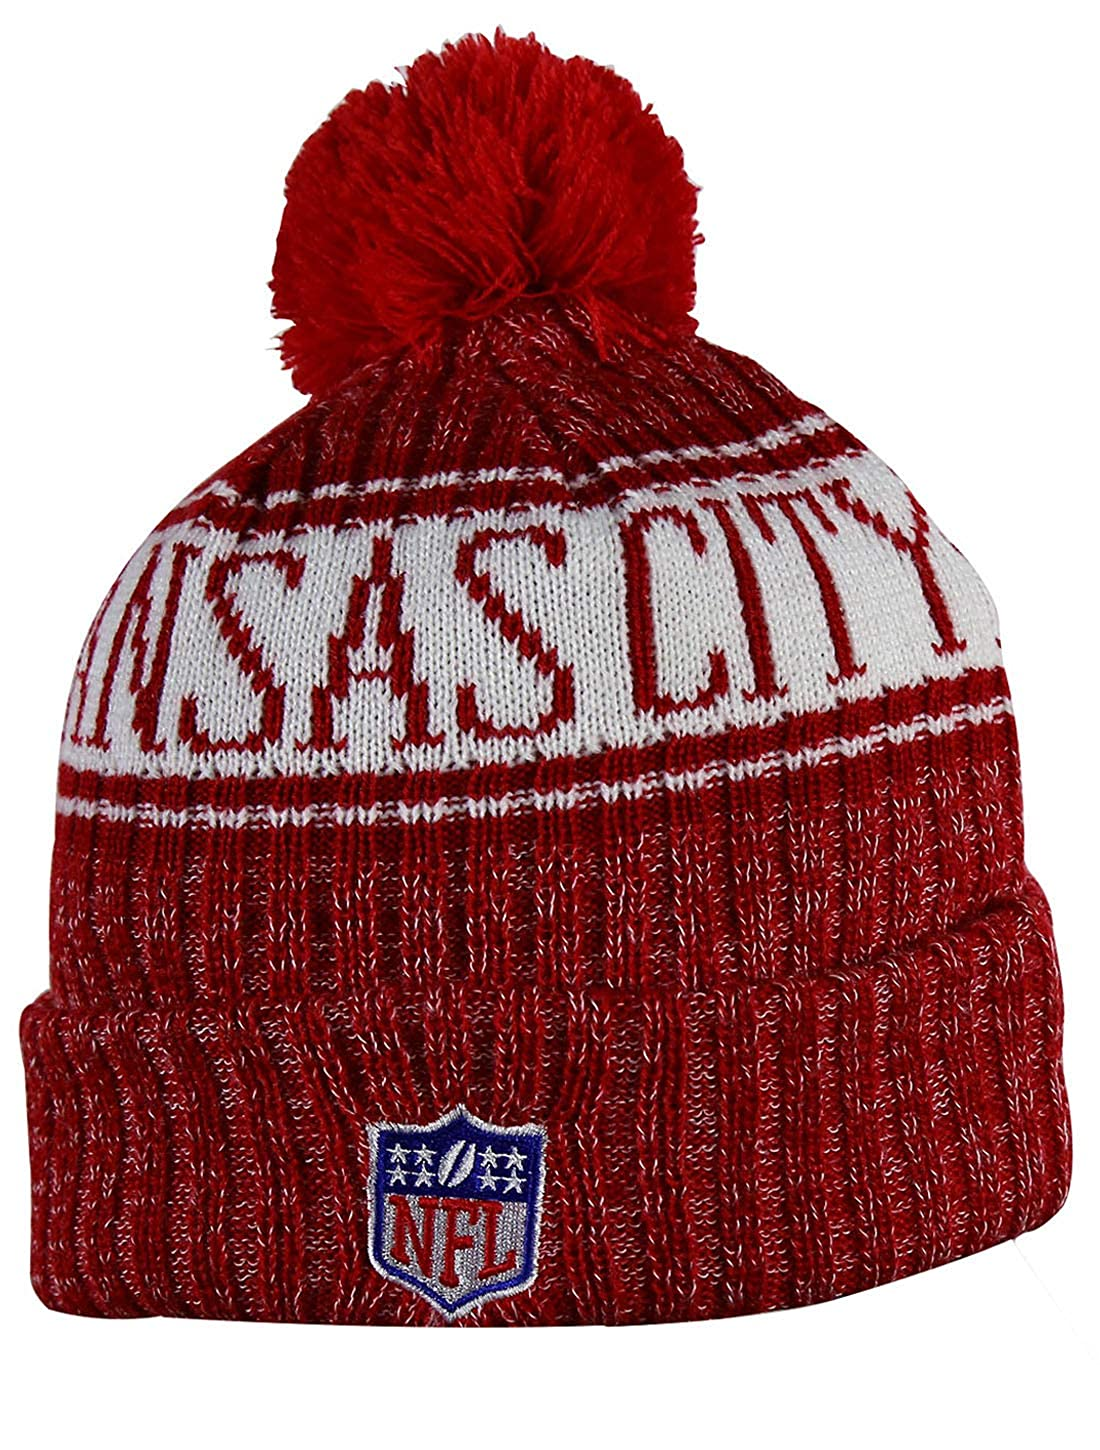 ab648e0ad Amazon.com  KC CHIEFS Adult Winter Knit Beanie Hat With Removable Pom Pom  One Size Fits Most Multicolor  Clothing